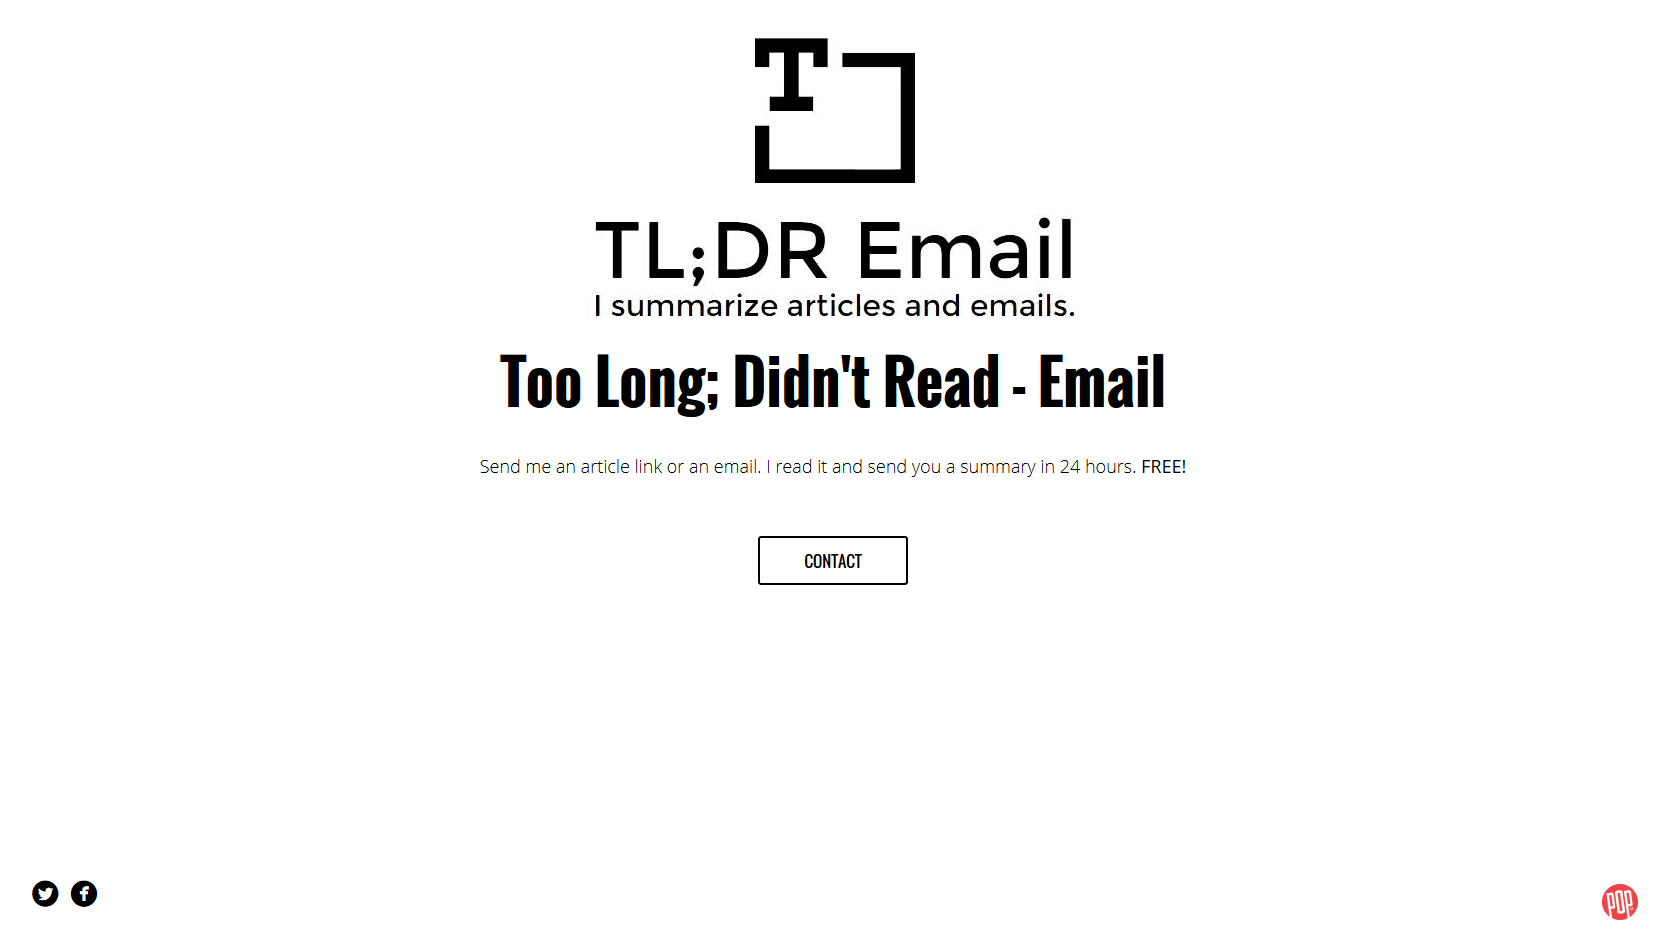 Project #2: TL;DR-Email